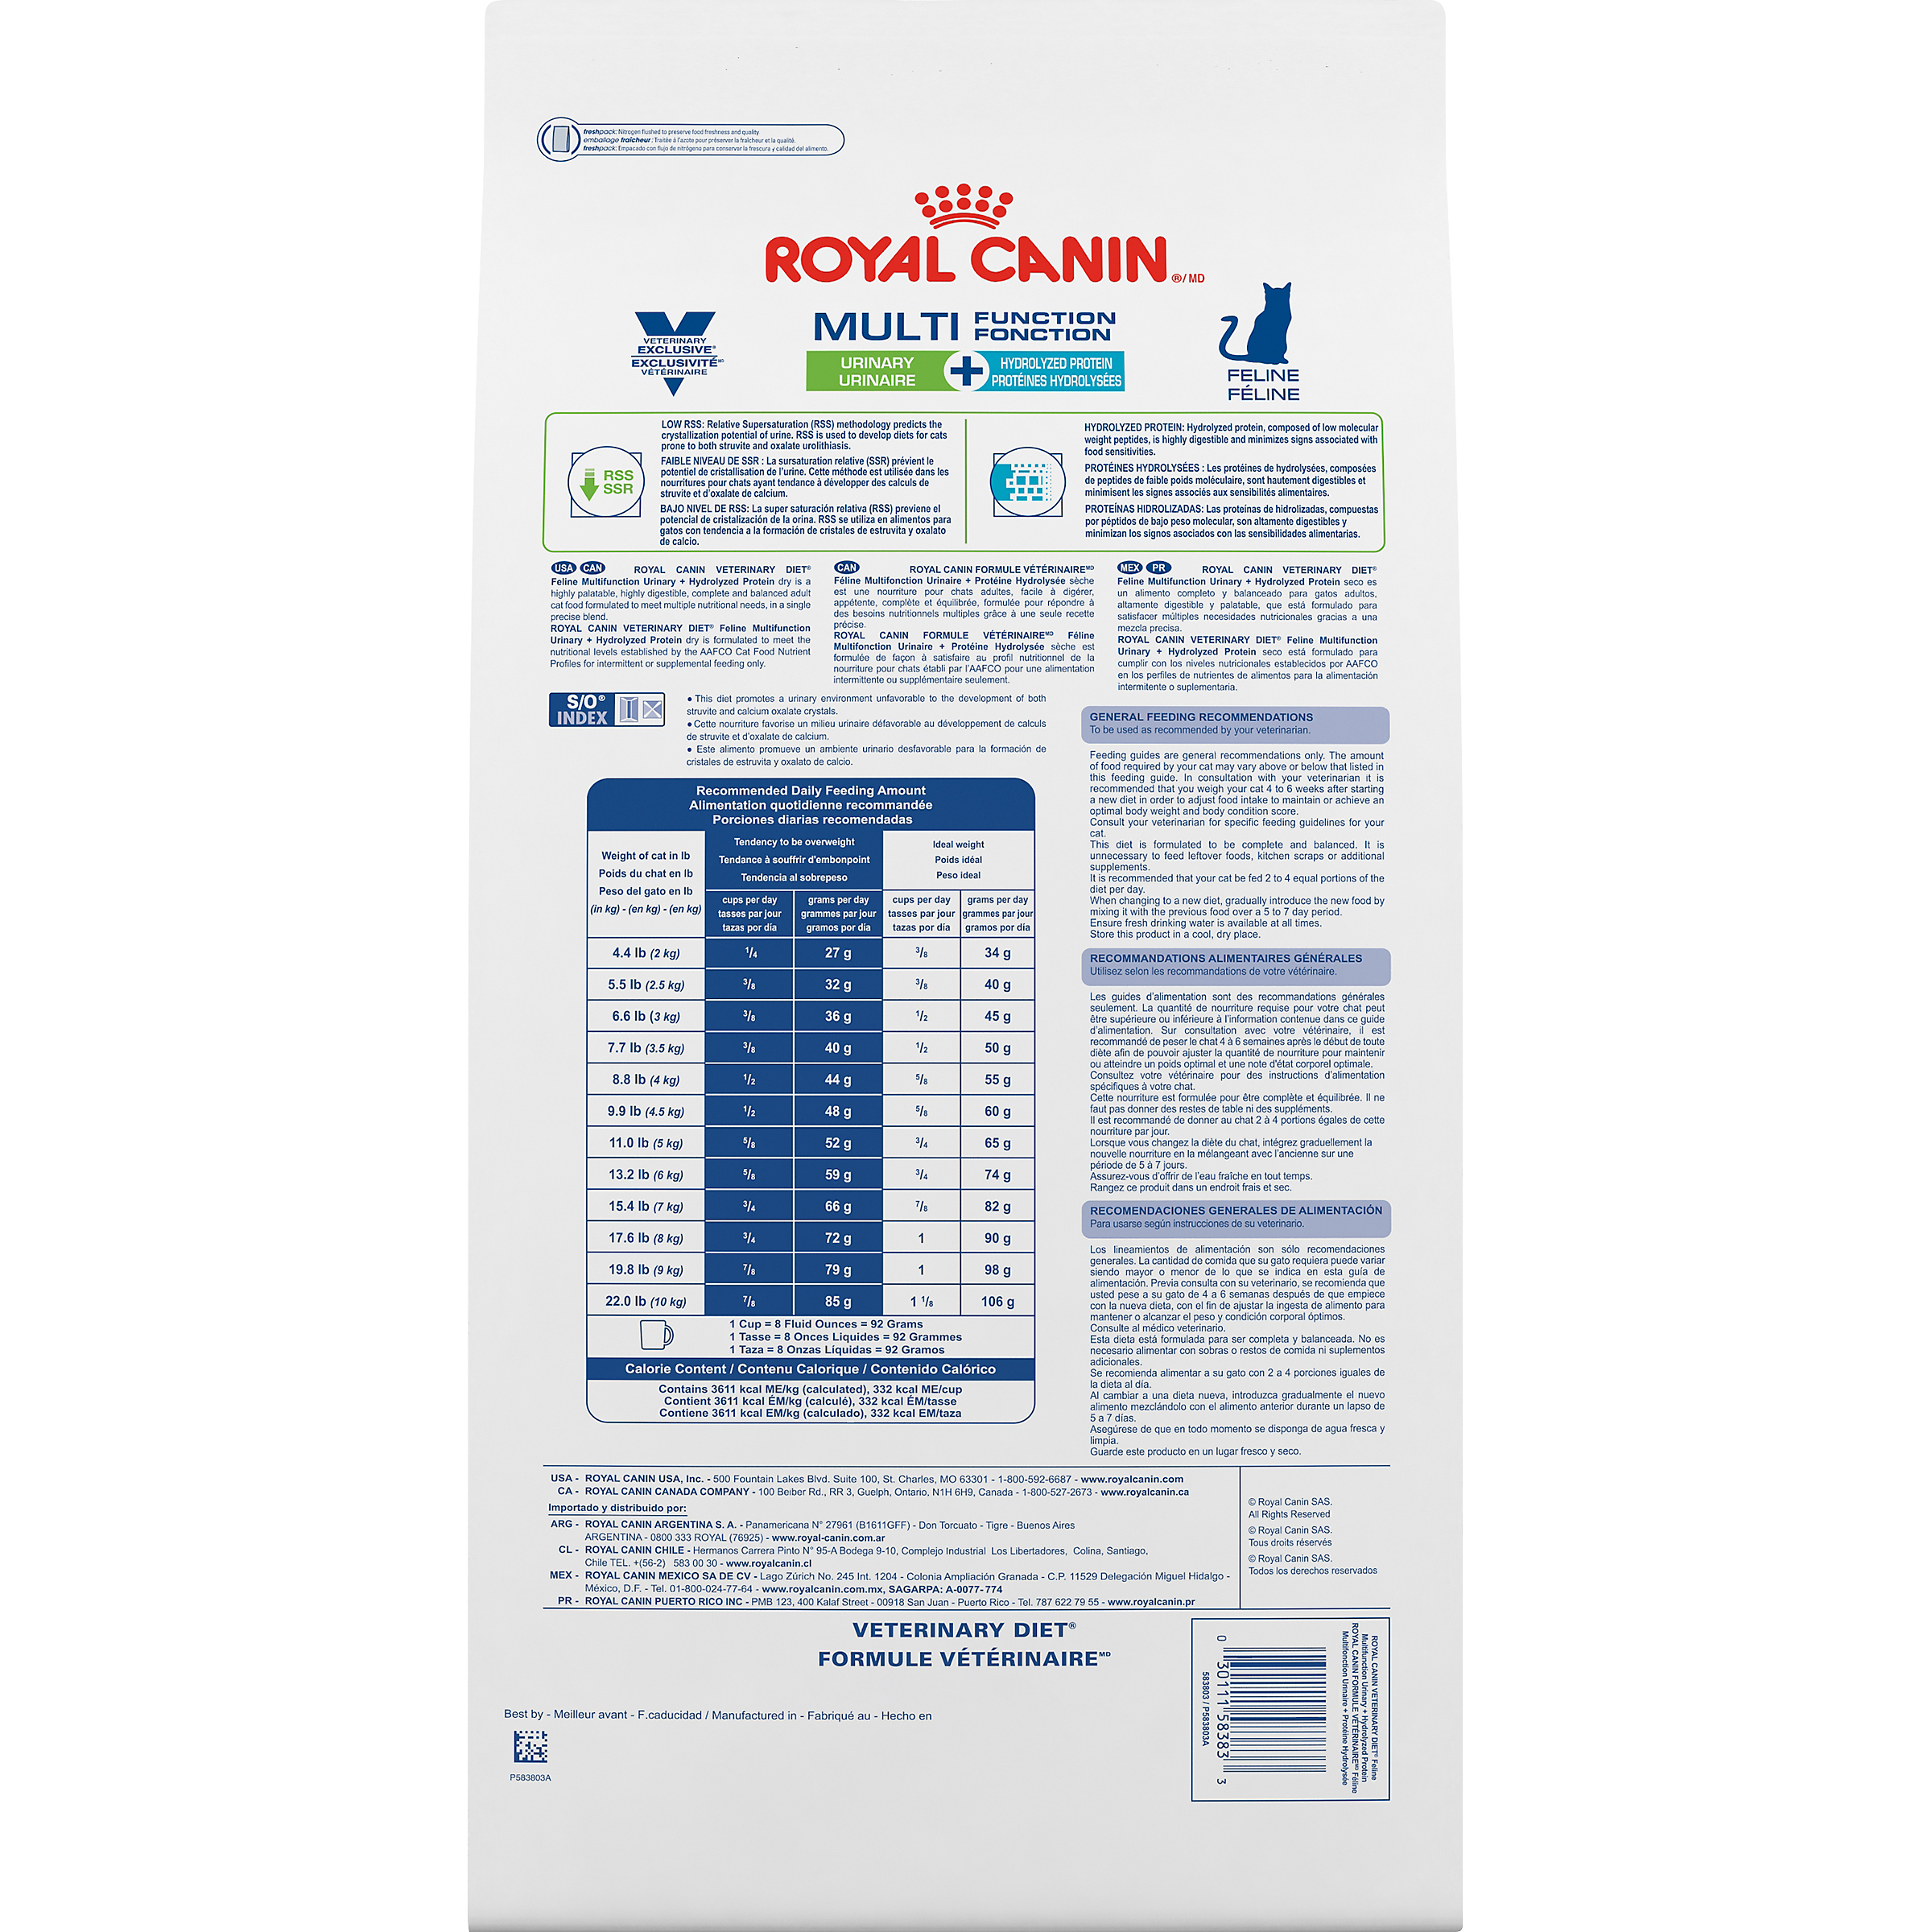 Royal Canin Veterinary Diet Feline Multifunction Urinary + Hydrolyzed Protein Dry Cat Food